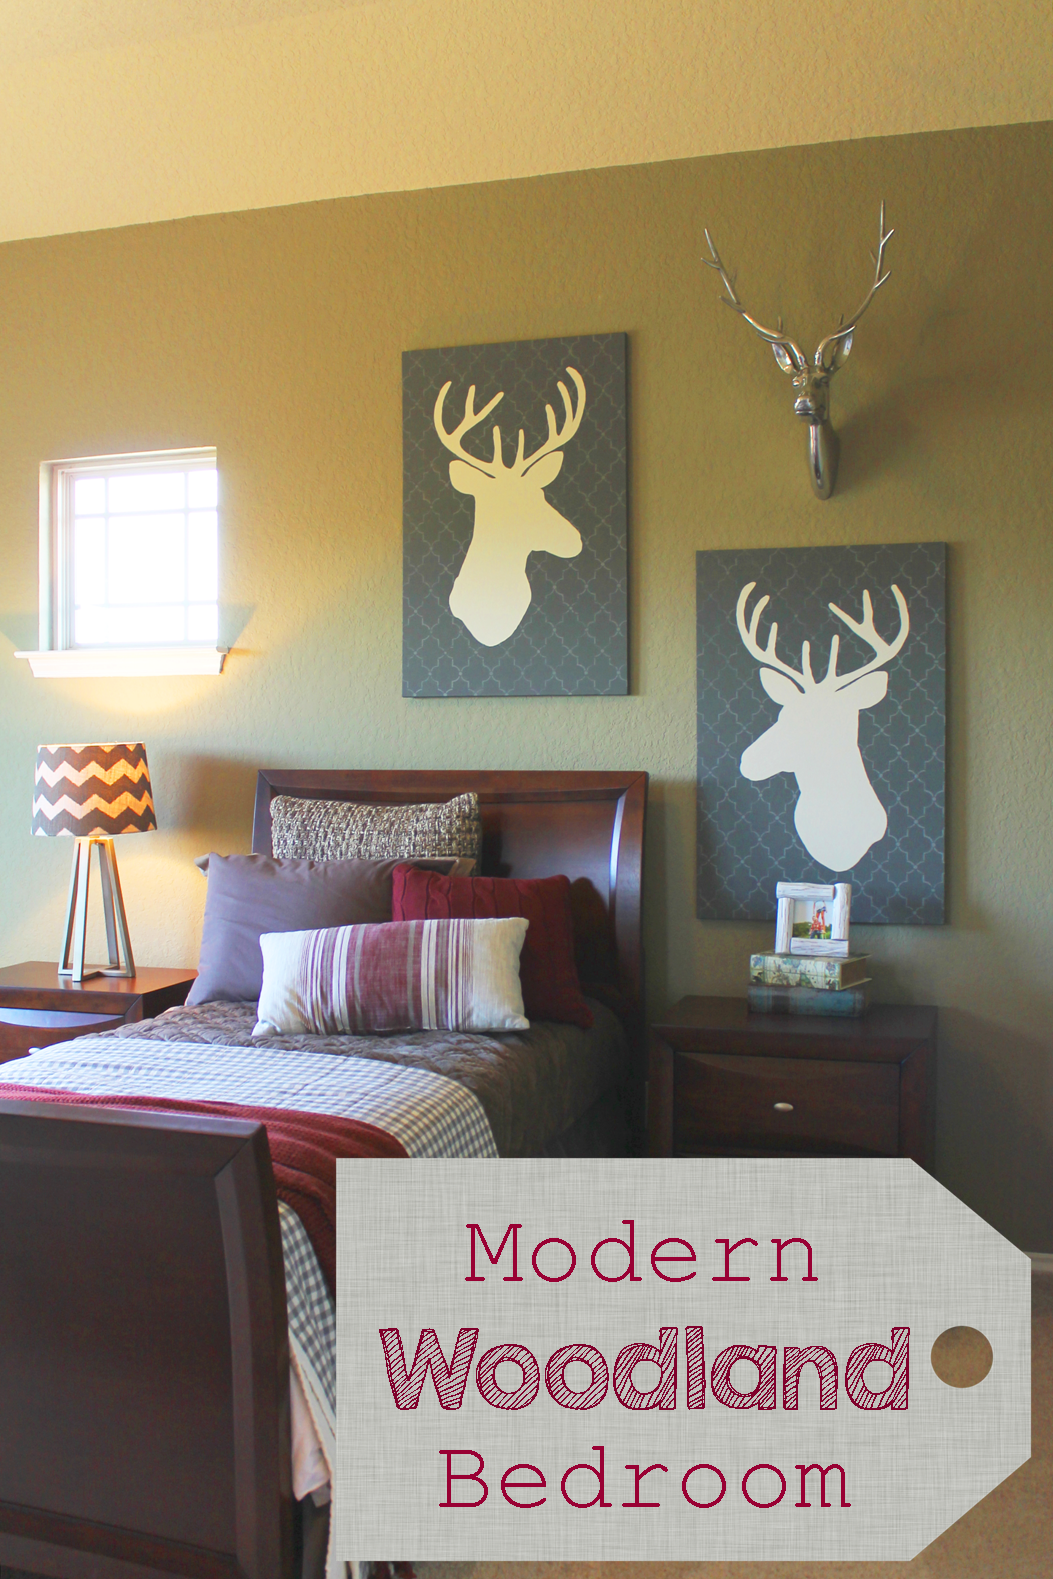 Modern woodland bedroom  Great for teen or tween  Also could be good as a  hunting eme  A few simple tricks to pulling this look off  with paint   accessories. Hunting   Boys  Room Designs   Decorating Ideas   HGTV Rate My